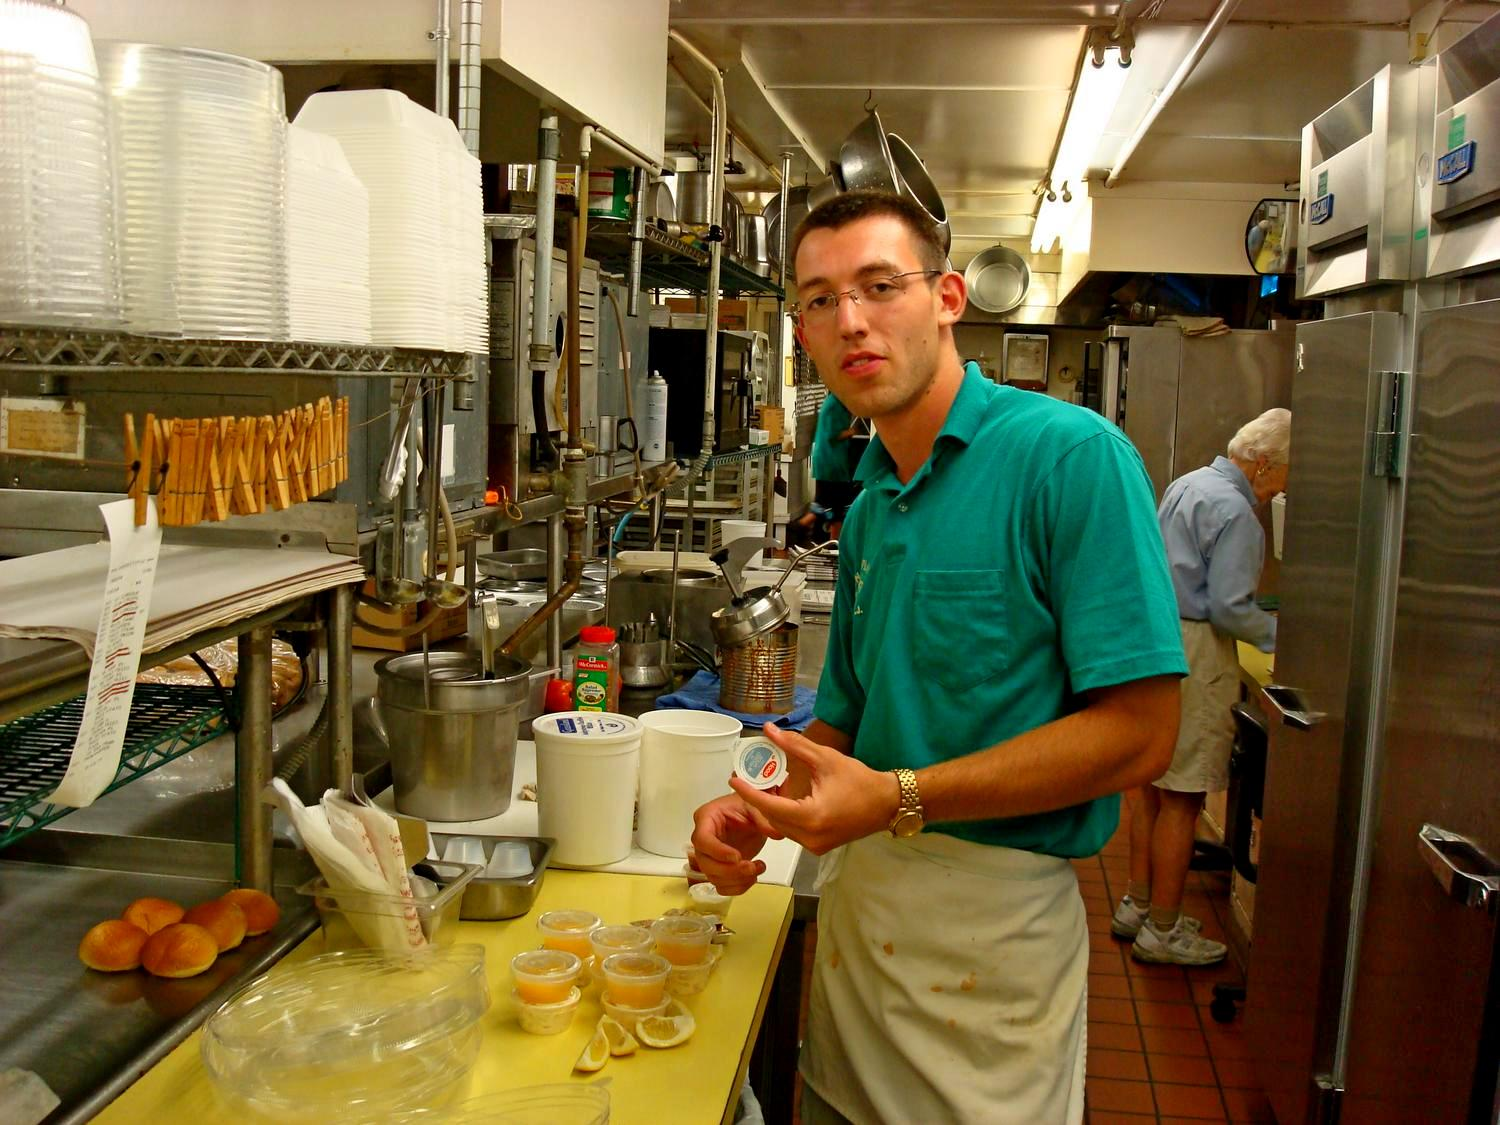 work and travel, usa, svet, prep cook, seafood restaurant, dips and side dishes